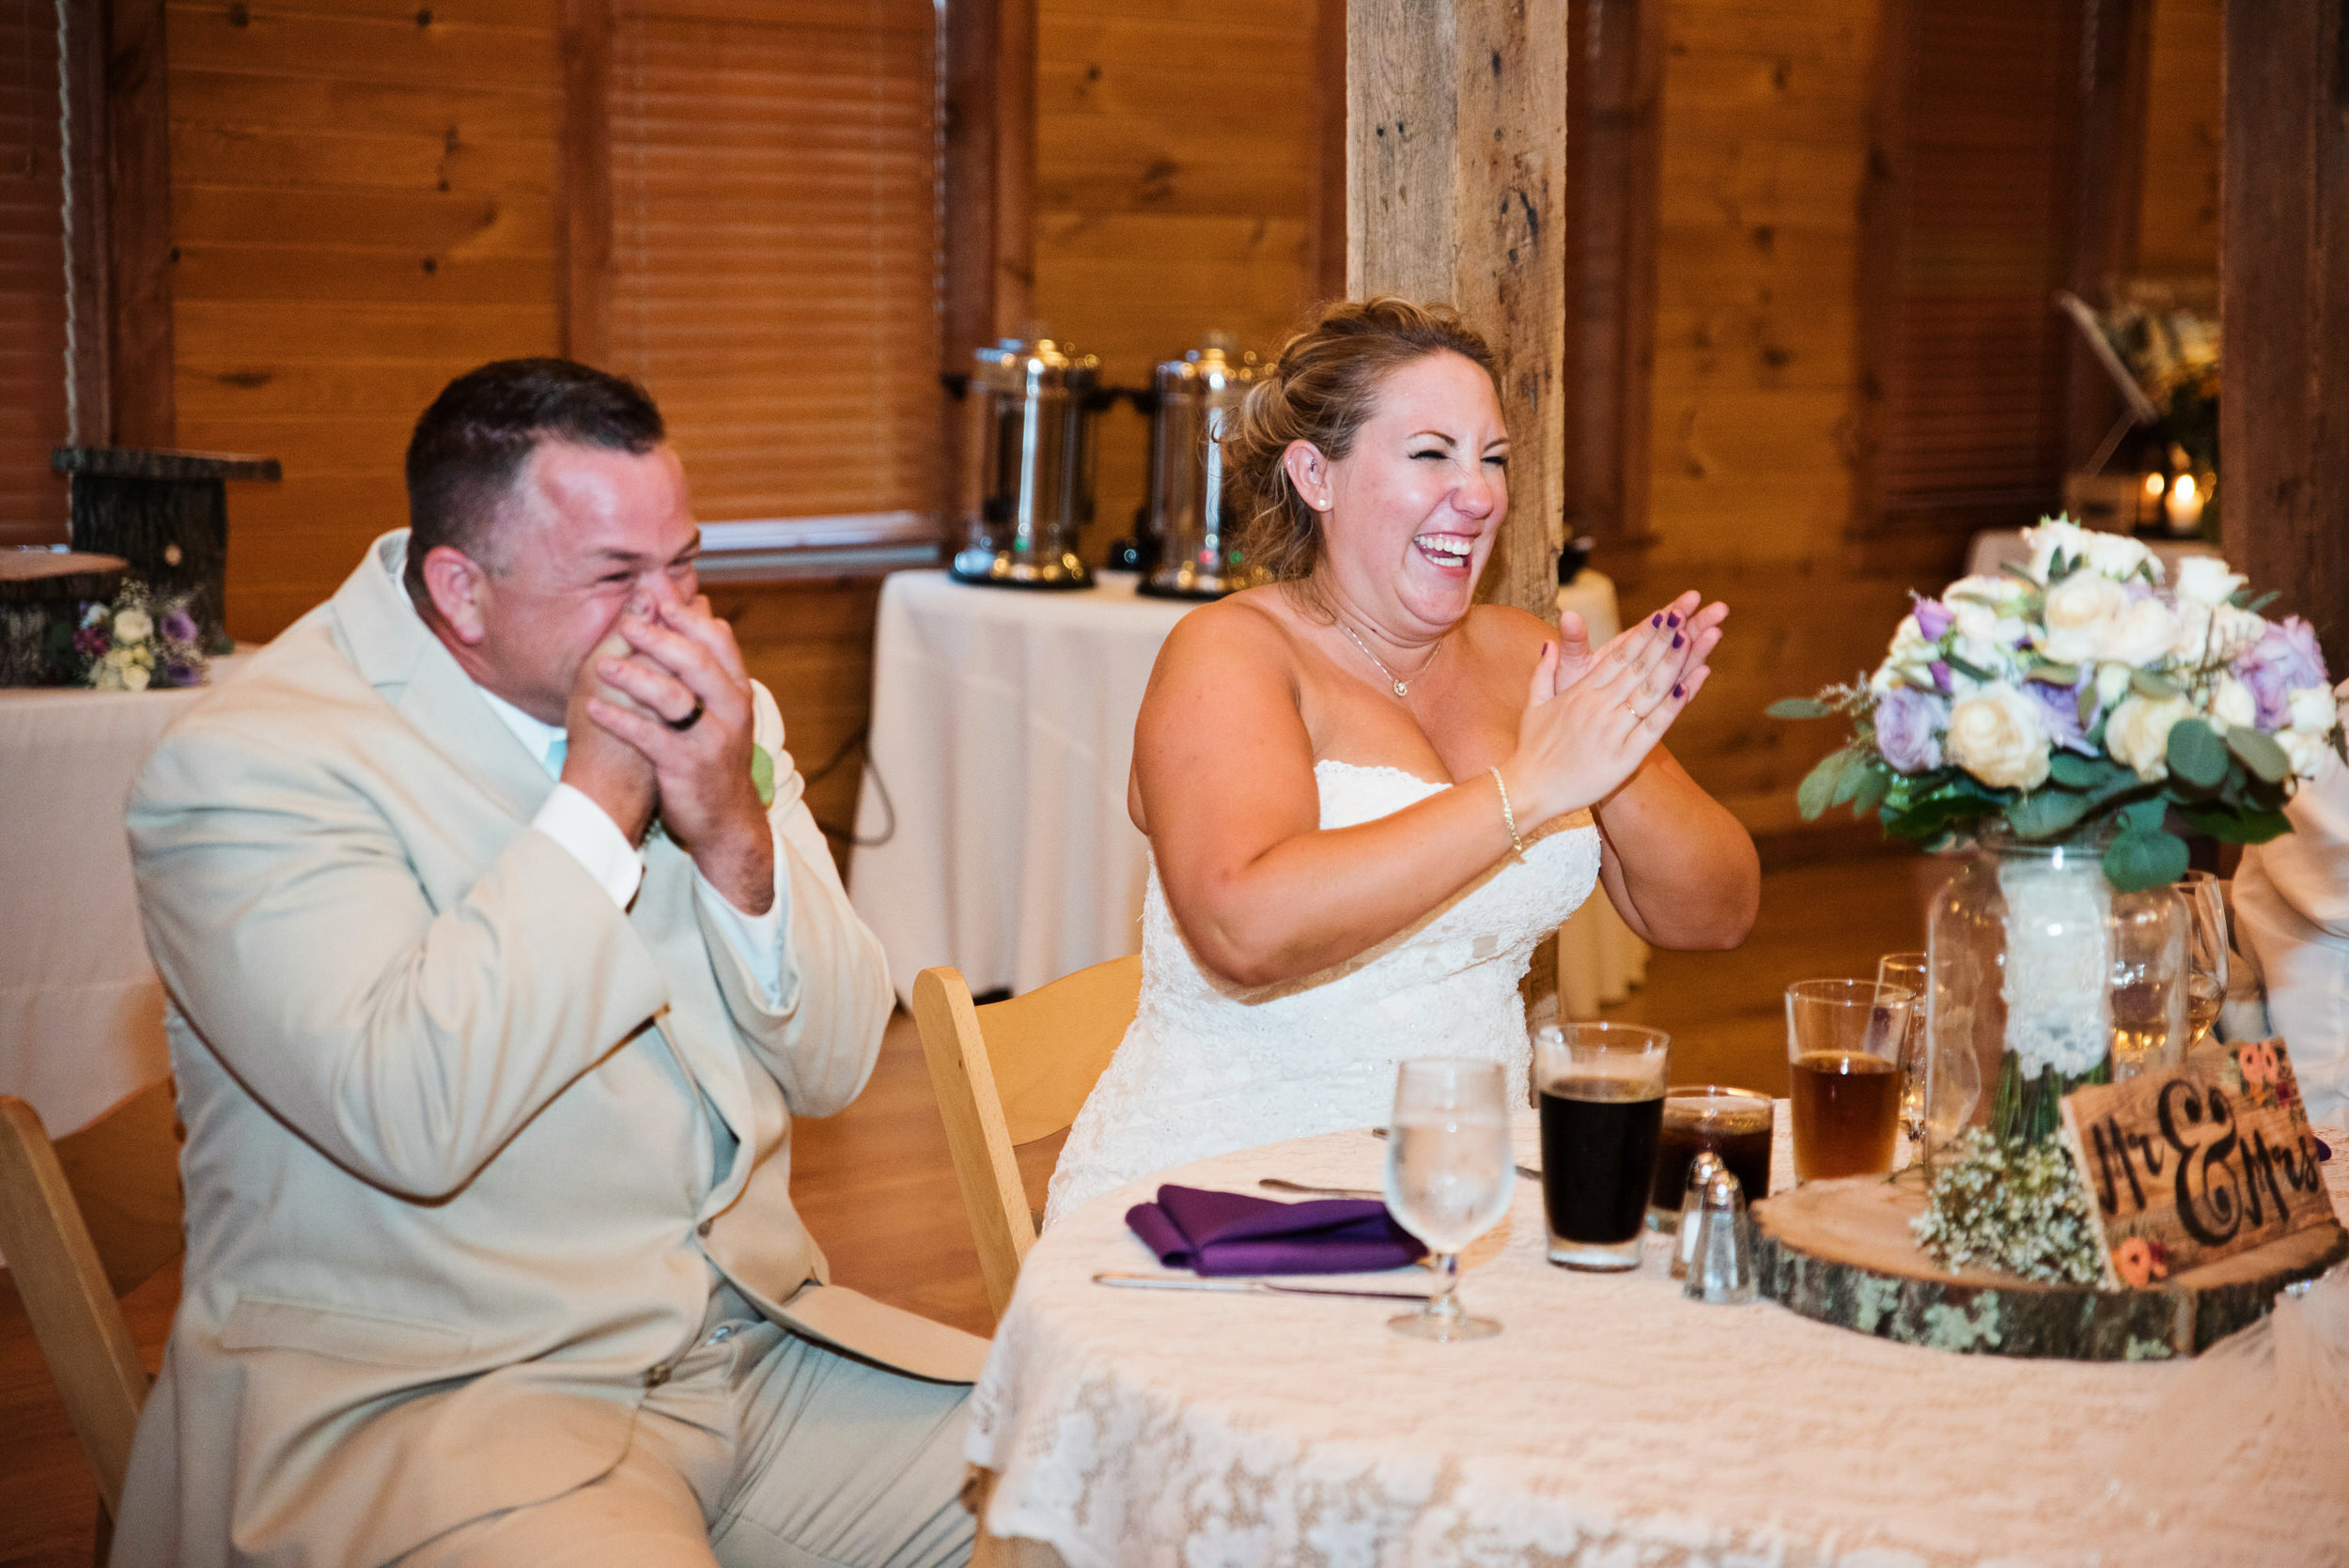 LiganoreWineryWedding-Amber&Andy-Reception-100.jpg